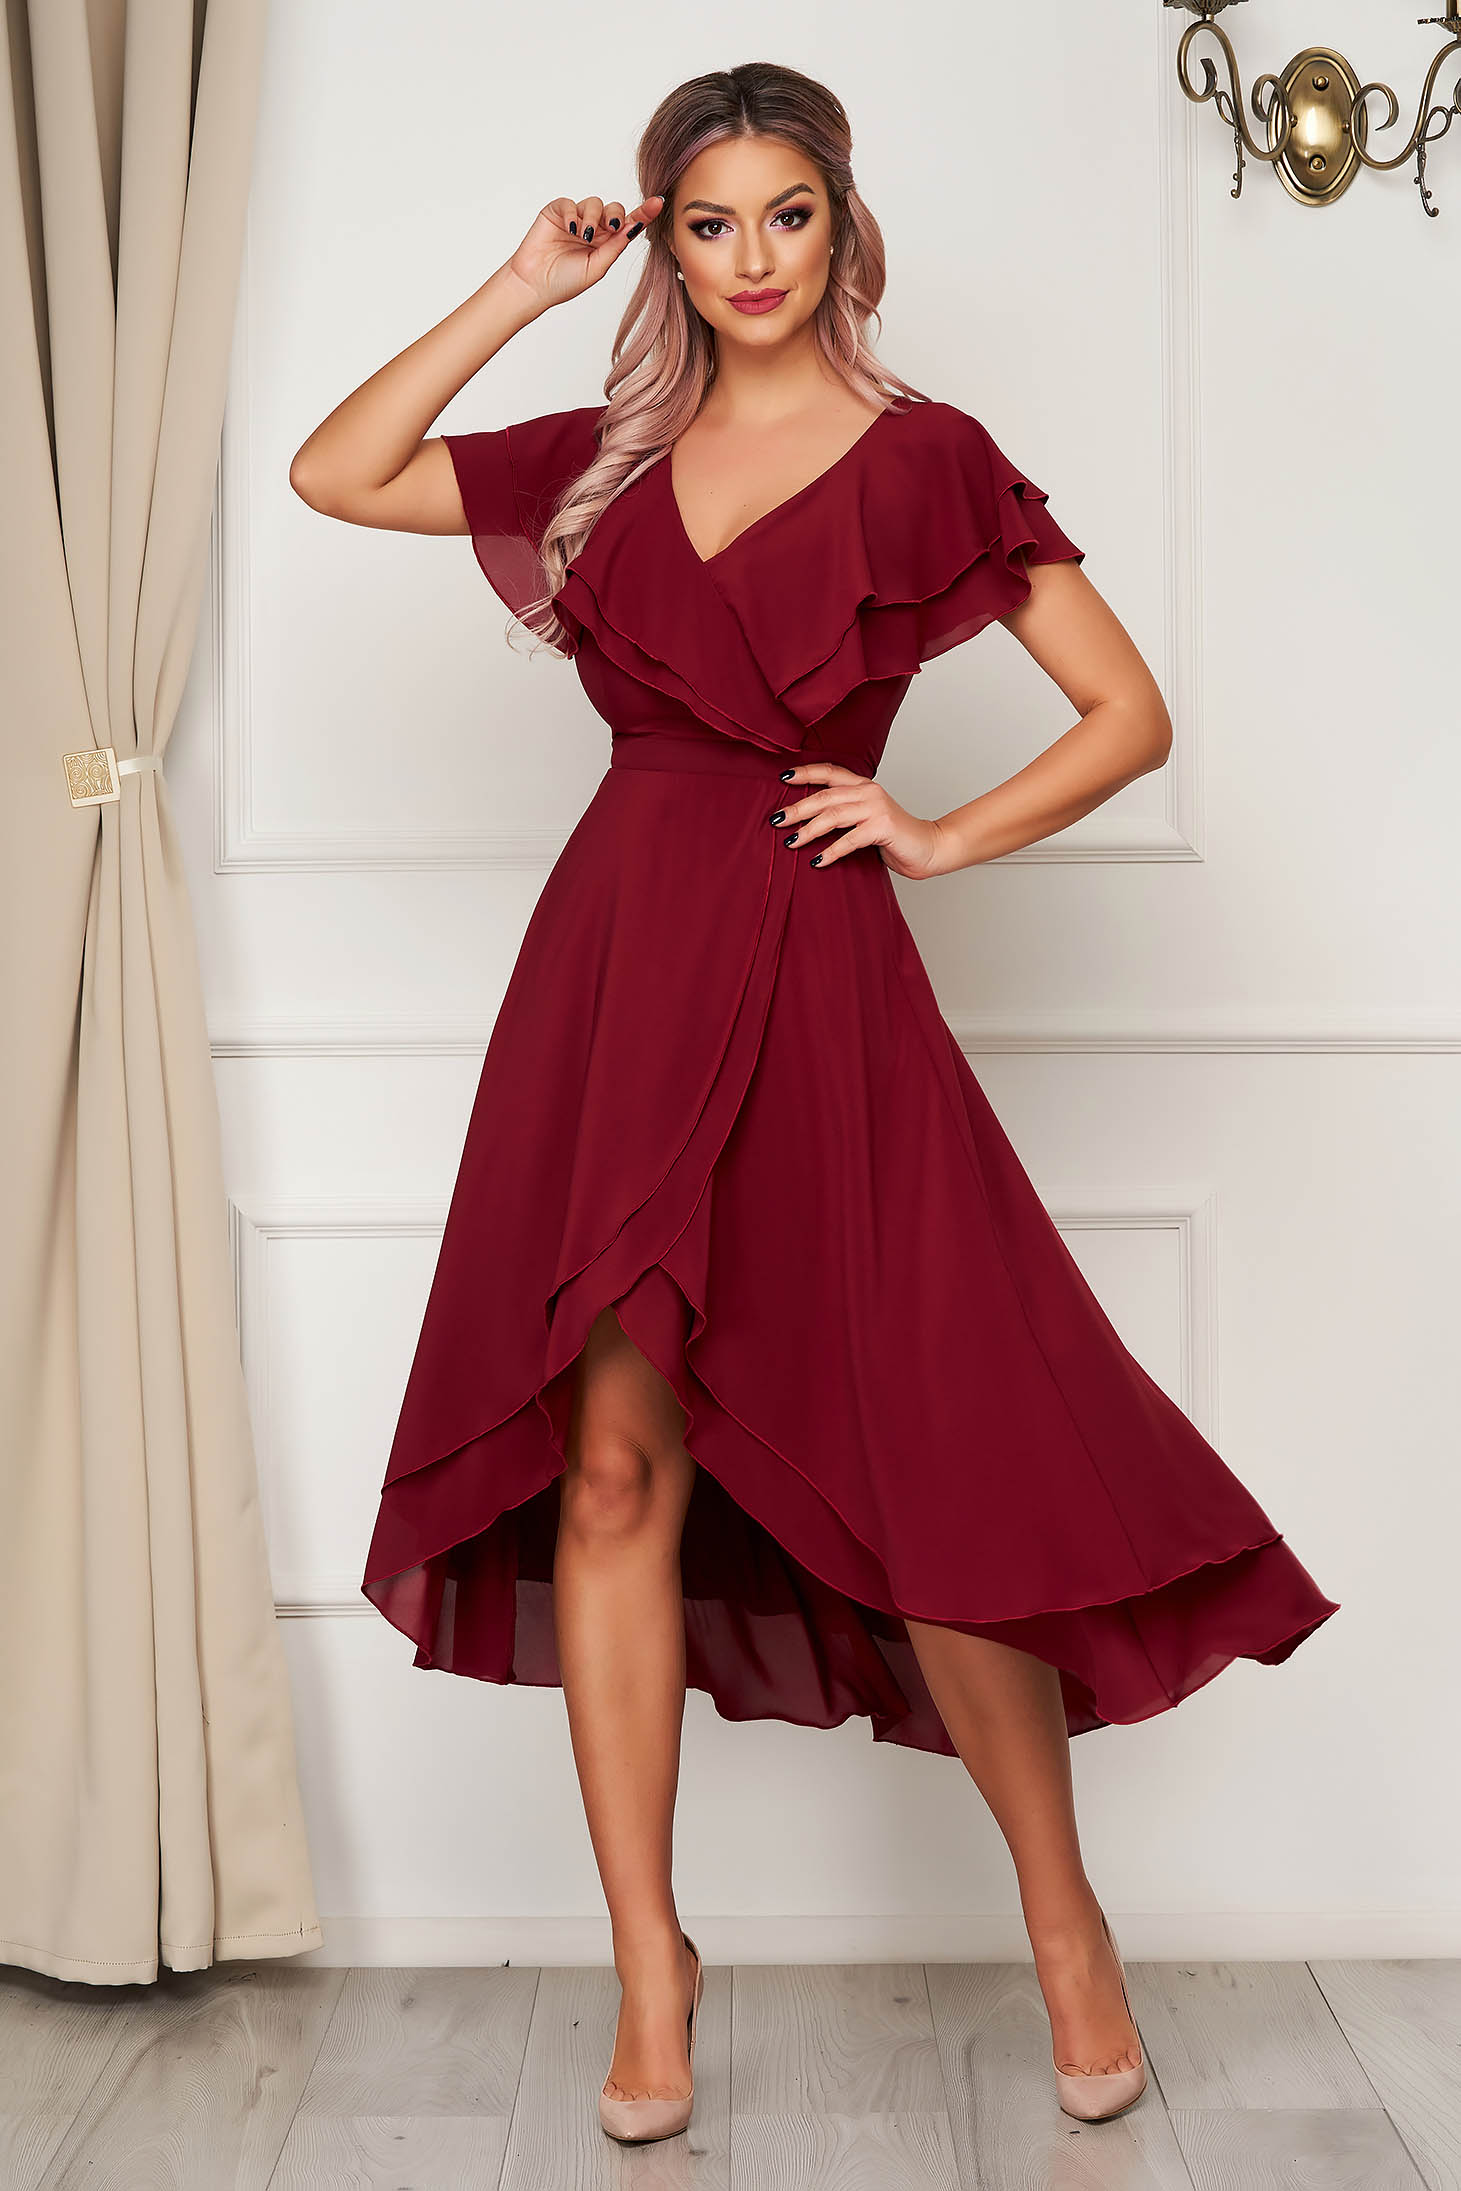 Dress StarShinerS burgundy occasional from veil fabric with ruffle details asymmetrical cloche